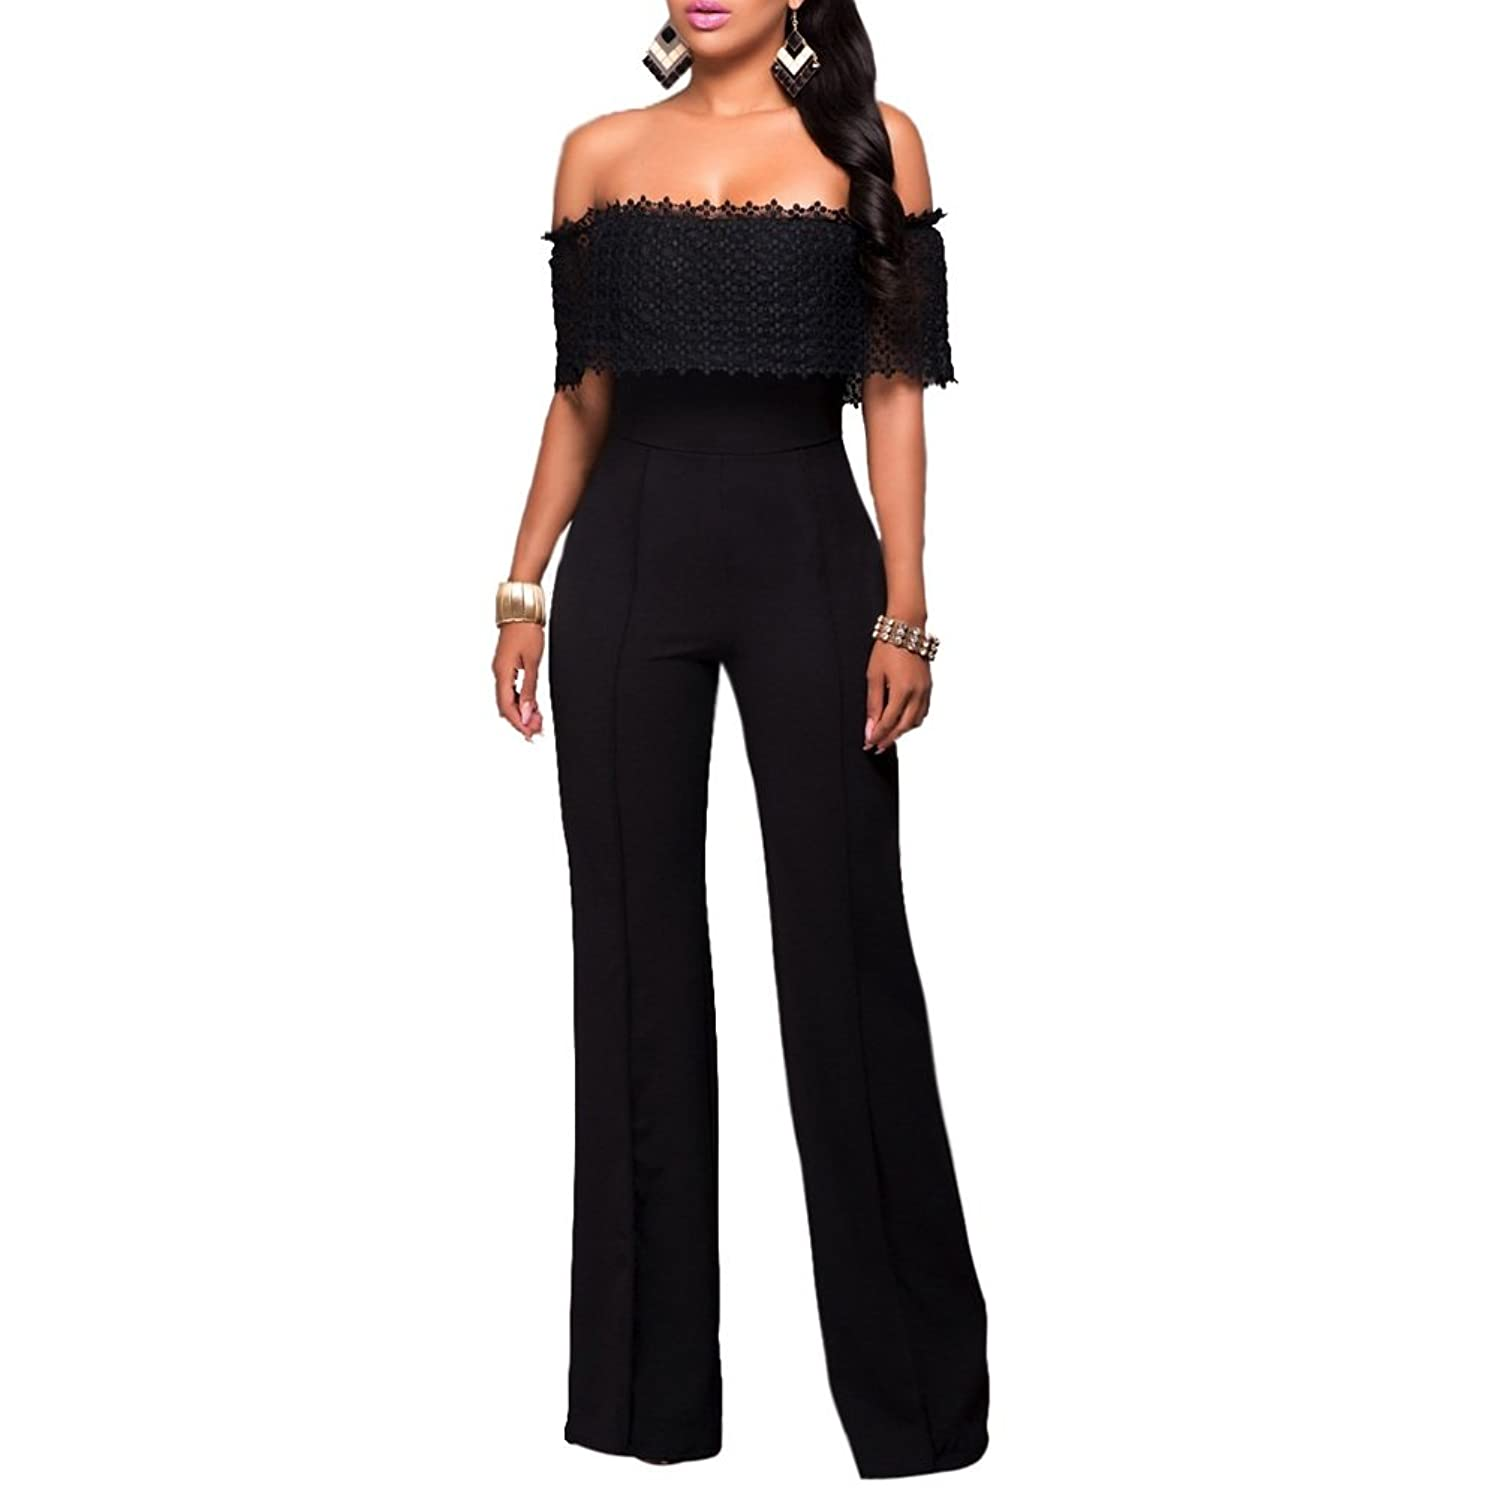 Riveroy Women's Off Shoulder Wide Leg Clubwear Party Jumpsuits Rompers Loose Pants